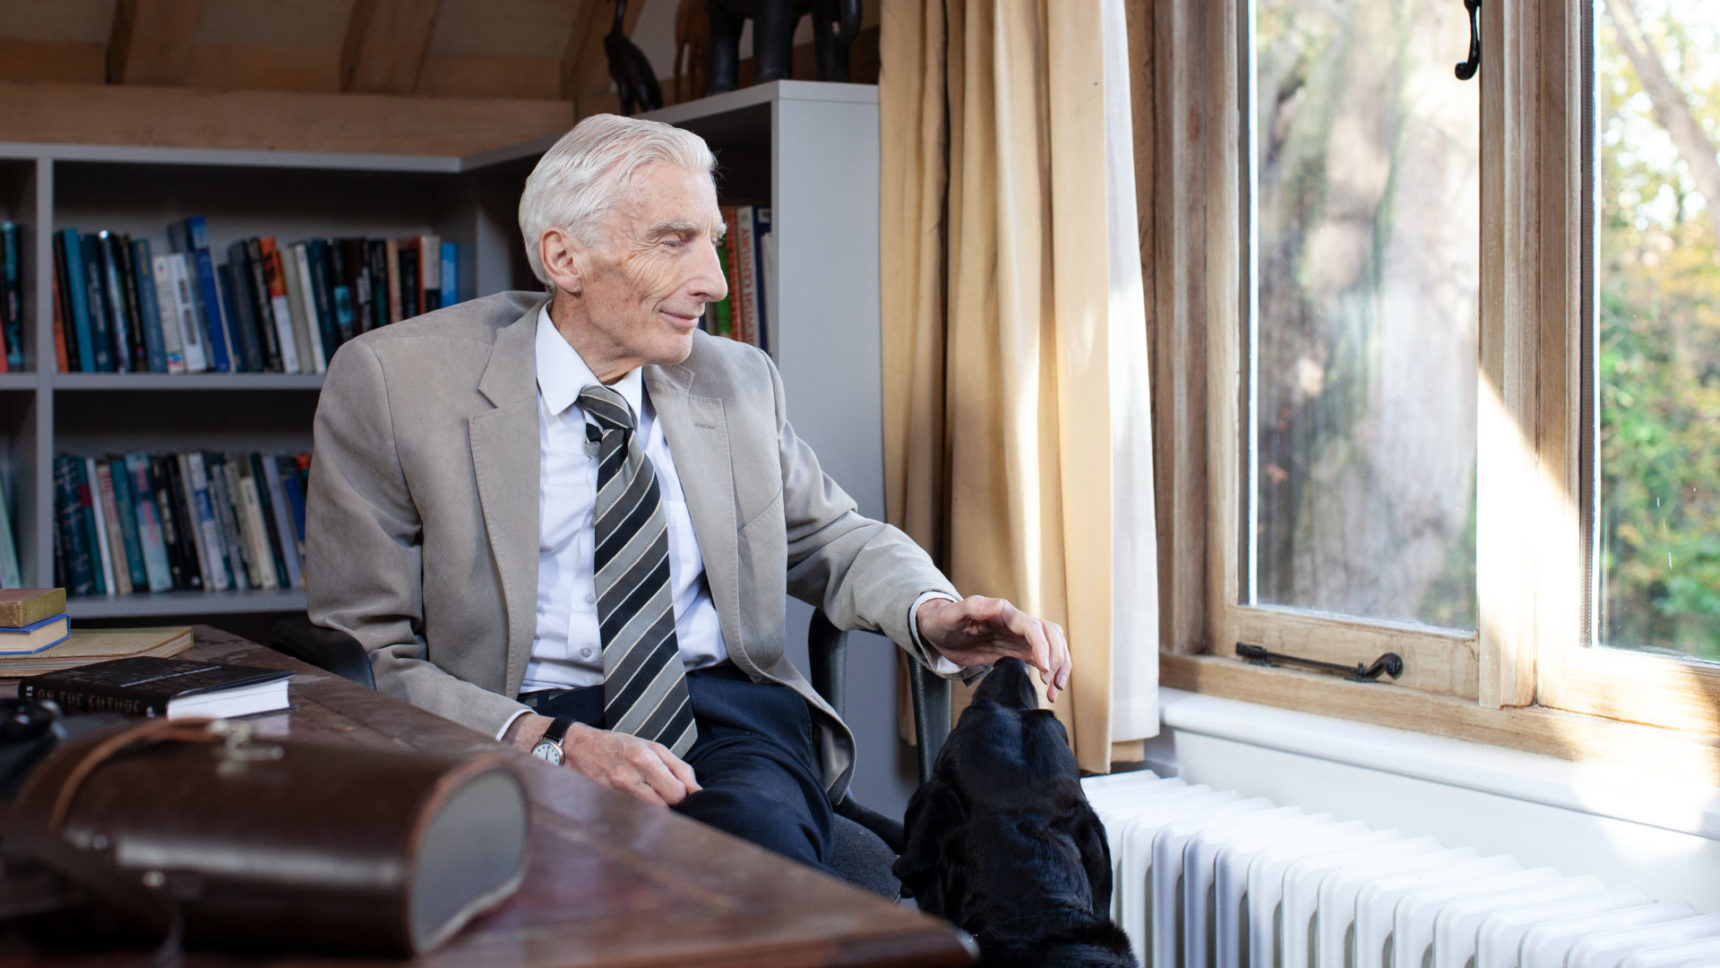 Martin Rees, the University of Cambridge astrophysicist, Astronomer Royal and popular author, discusses how our society can benefit from future science and technology while avoiding potential pitfalls.